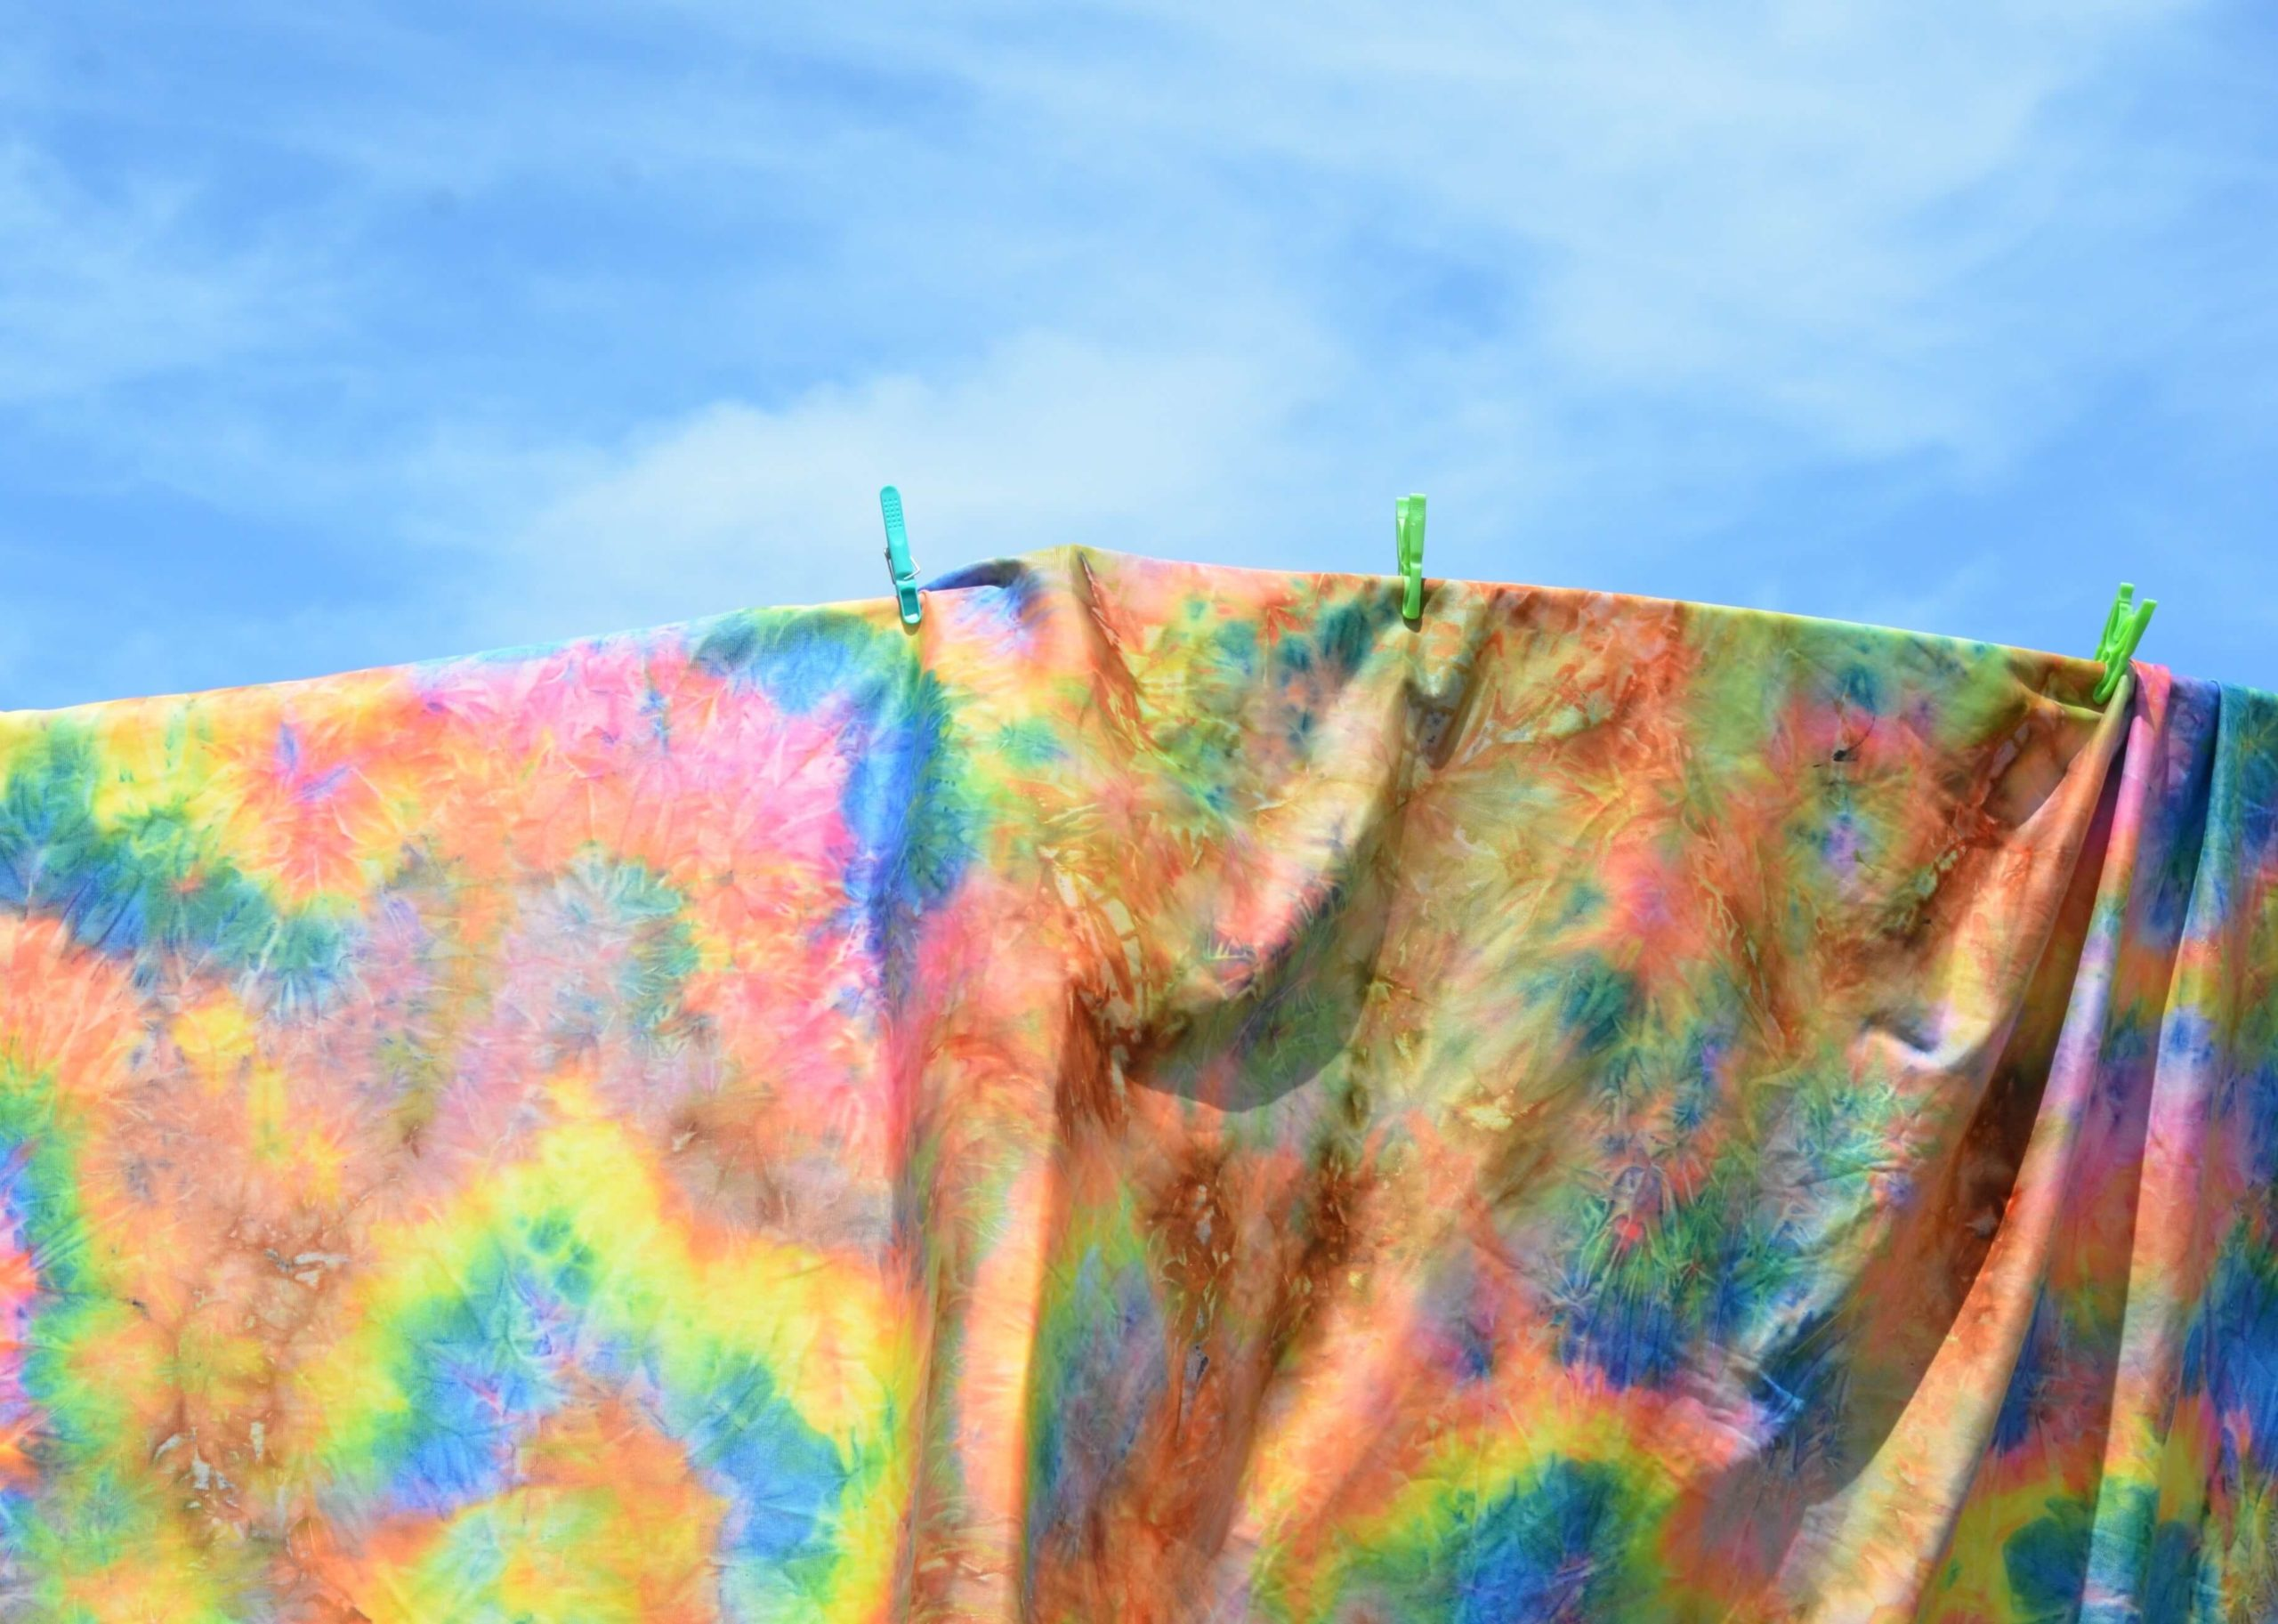 Colorful blanket being dried against a blue background